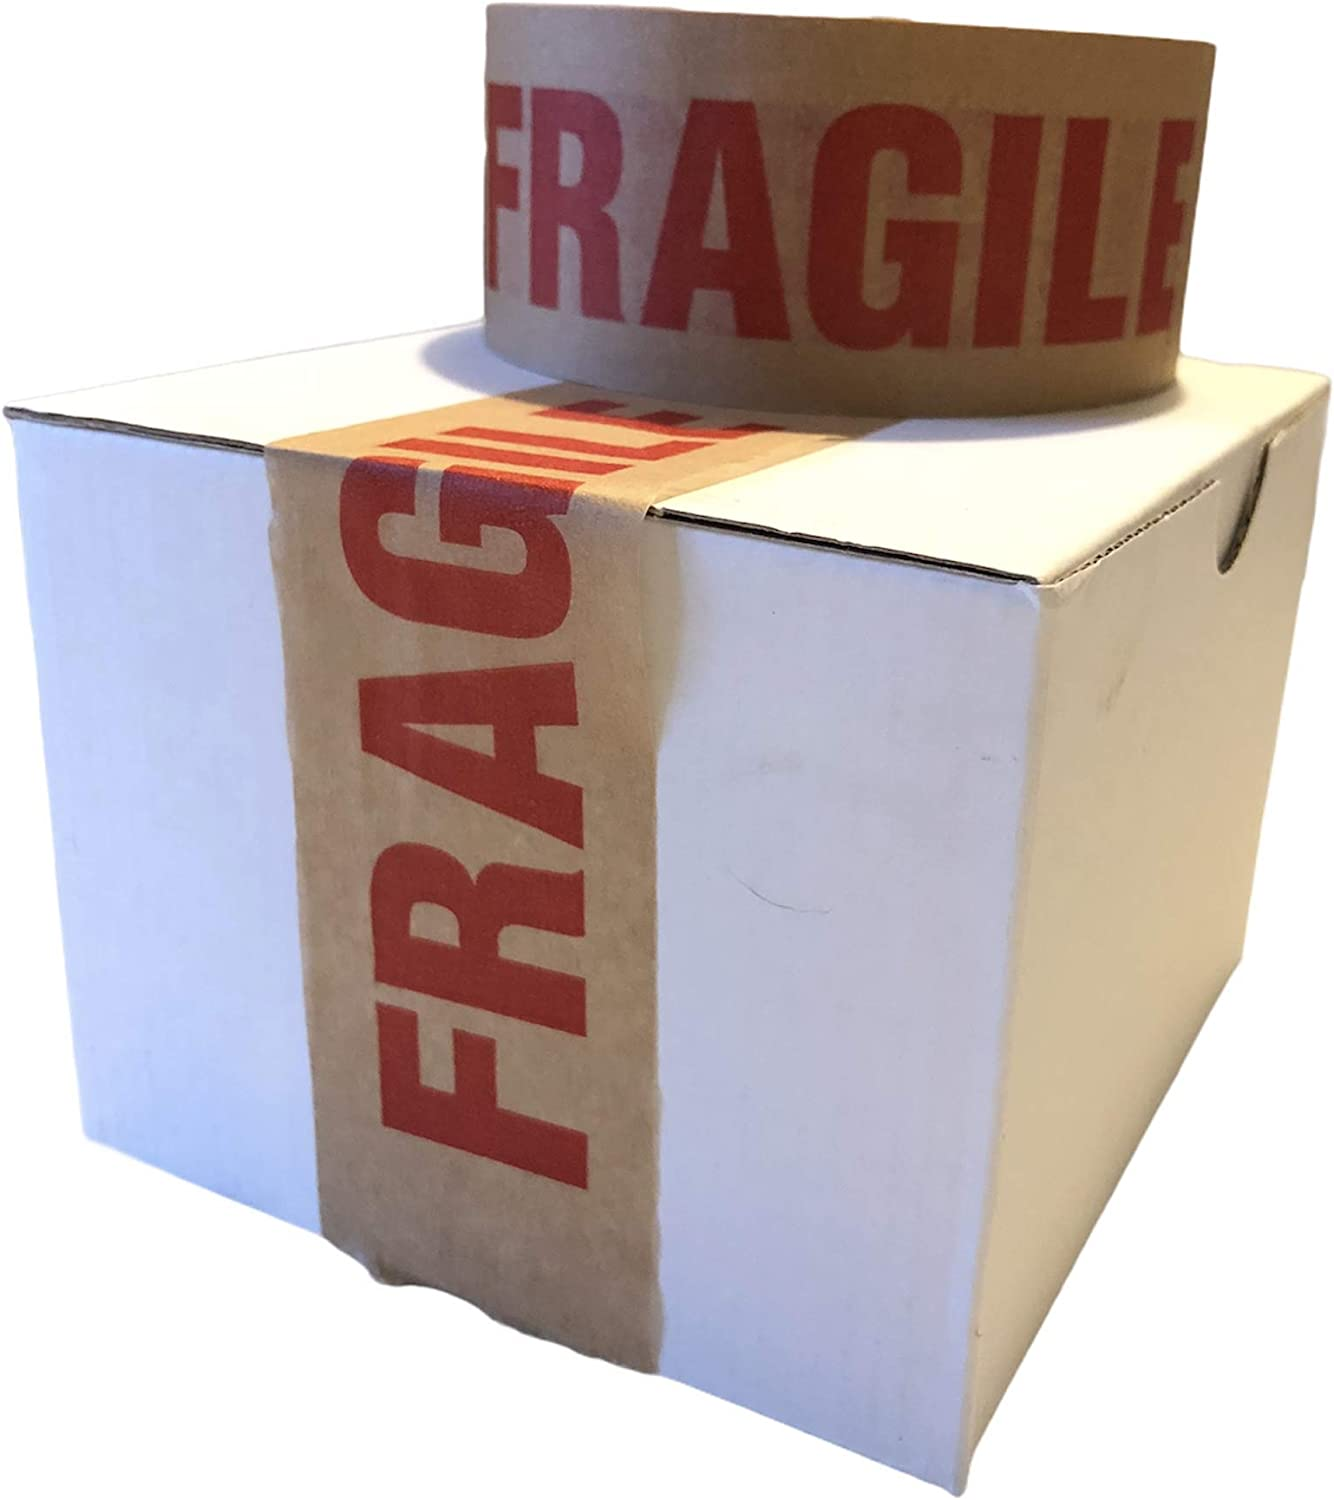 Eco-Friendly Brown Paper Packaging for Moving House Pack of 2 Fully Recyclable Strong Paper Packaging Kite Tape 50m x 50mm Fragile Printed Kraft Paper for Packing Parcels and Boxes